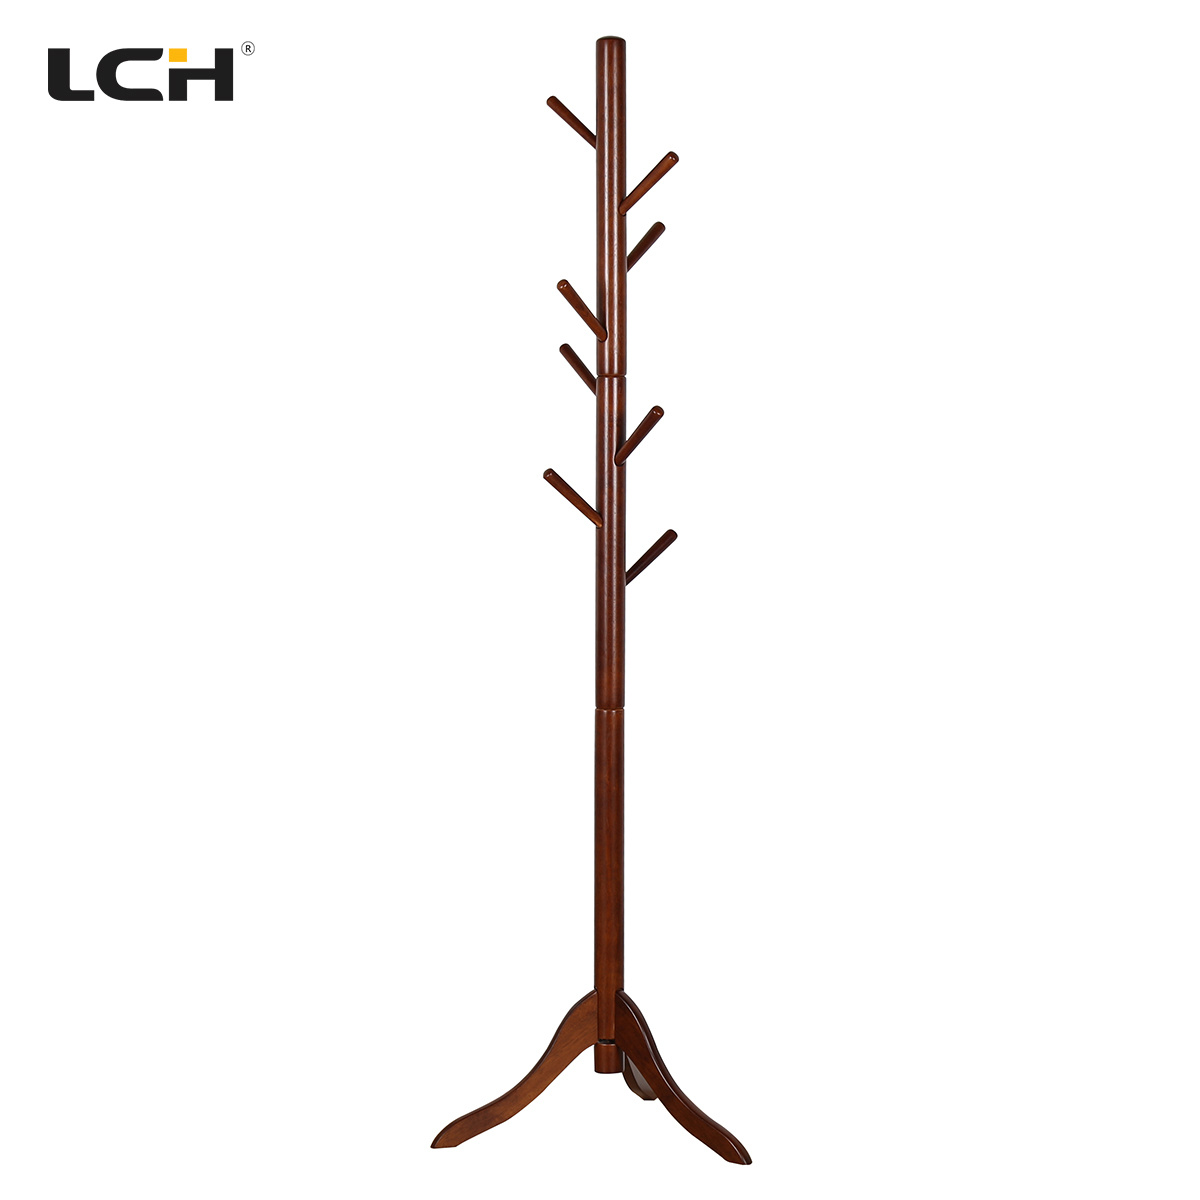 Modern Living Room Furniture Wooden Clothes Hanger Rack